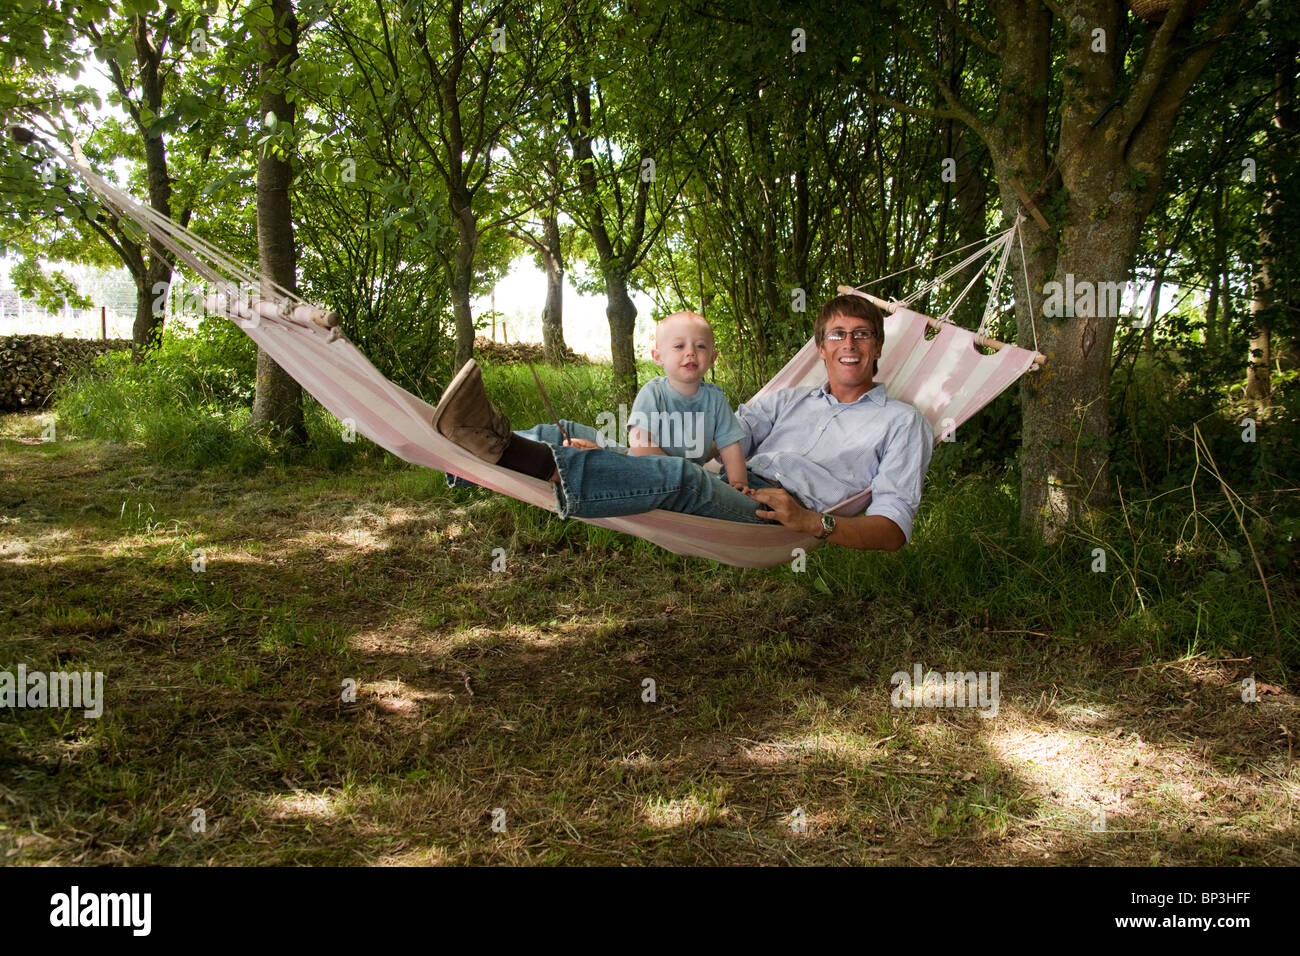 16 month old baby boy and his uncle having fun on a garden hammock ...